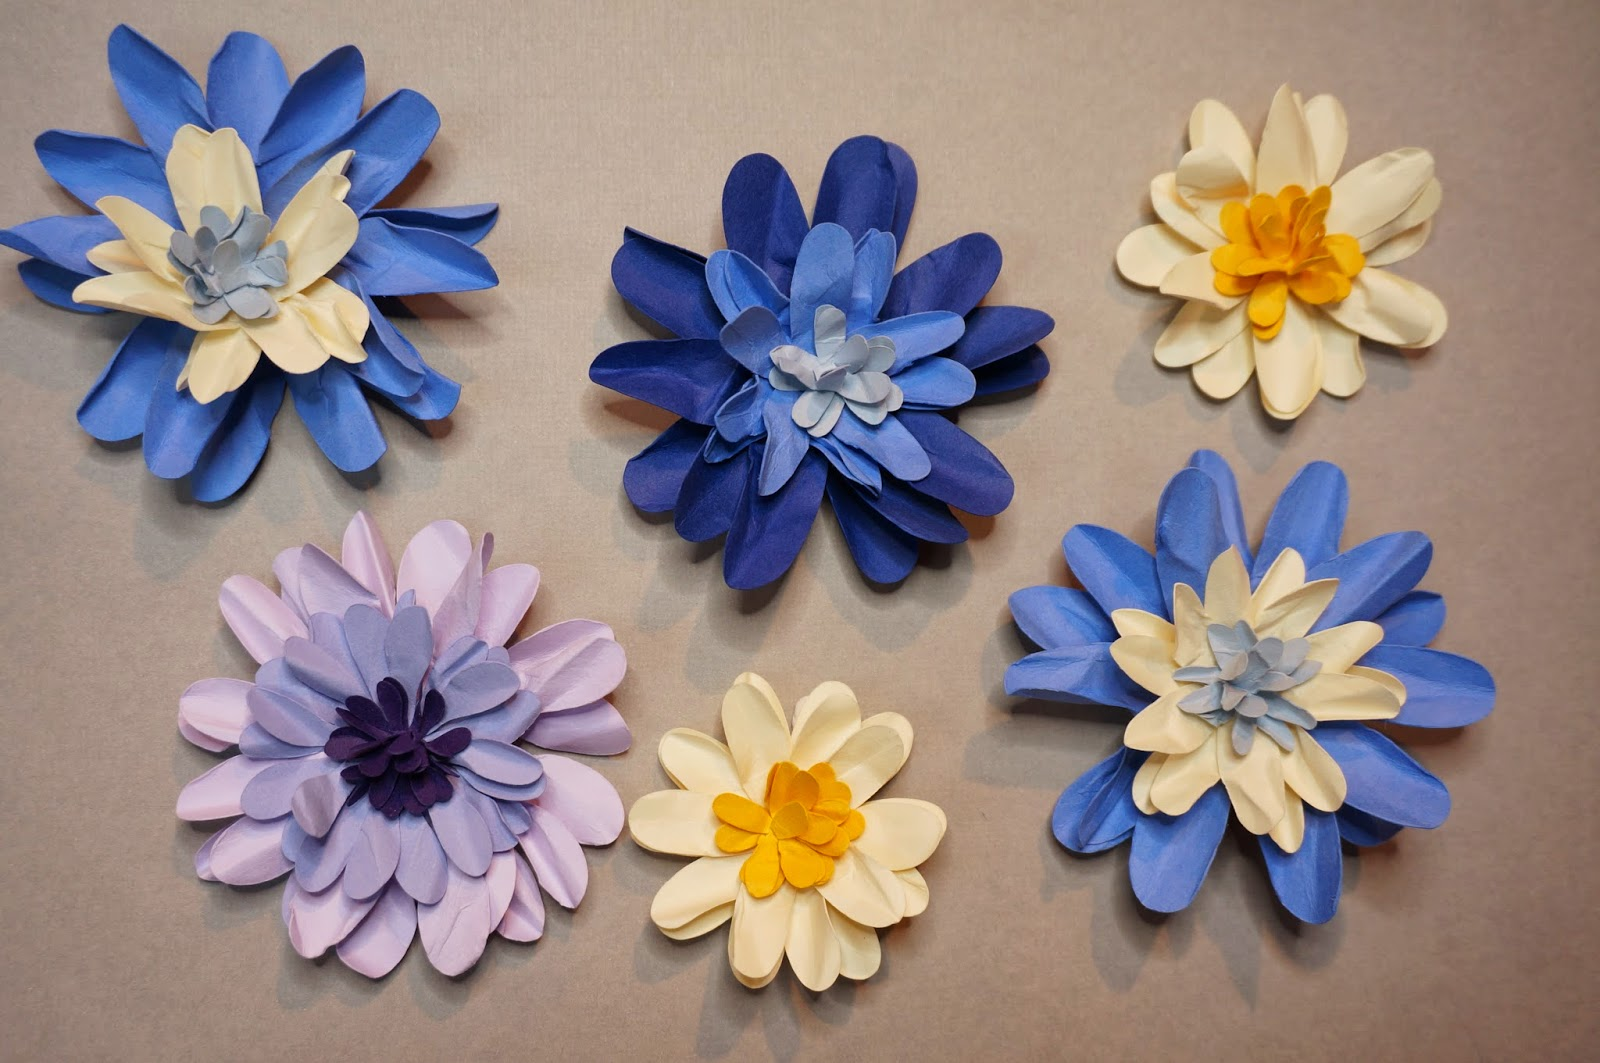 Cats on the homestead paper flowers for cards scrapbooks decor look what i made these paper flowers are so simple and pretty izmirmasajfo